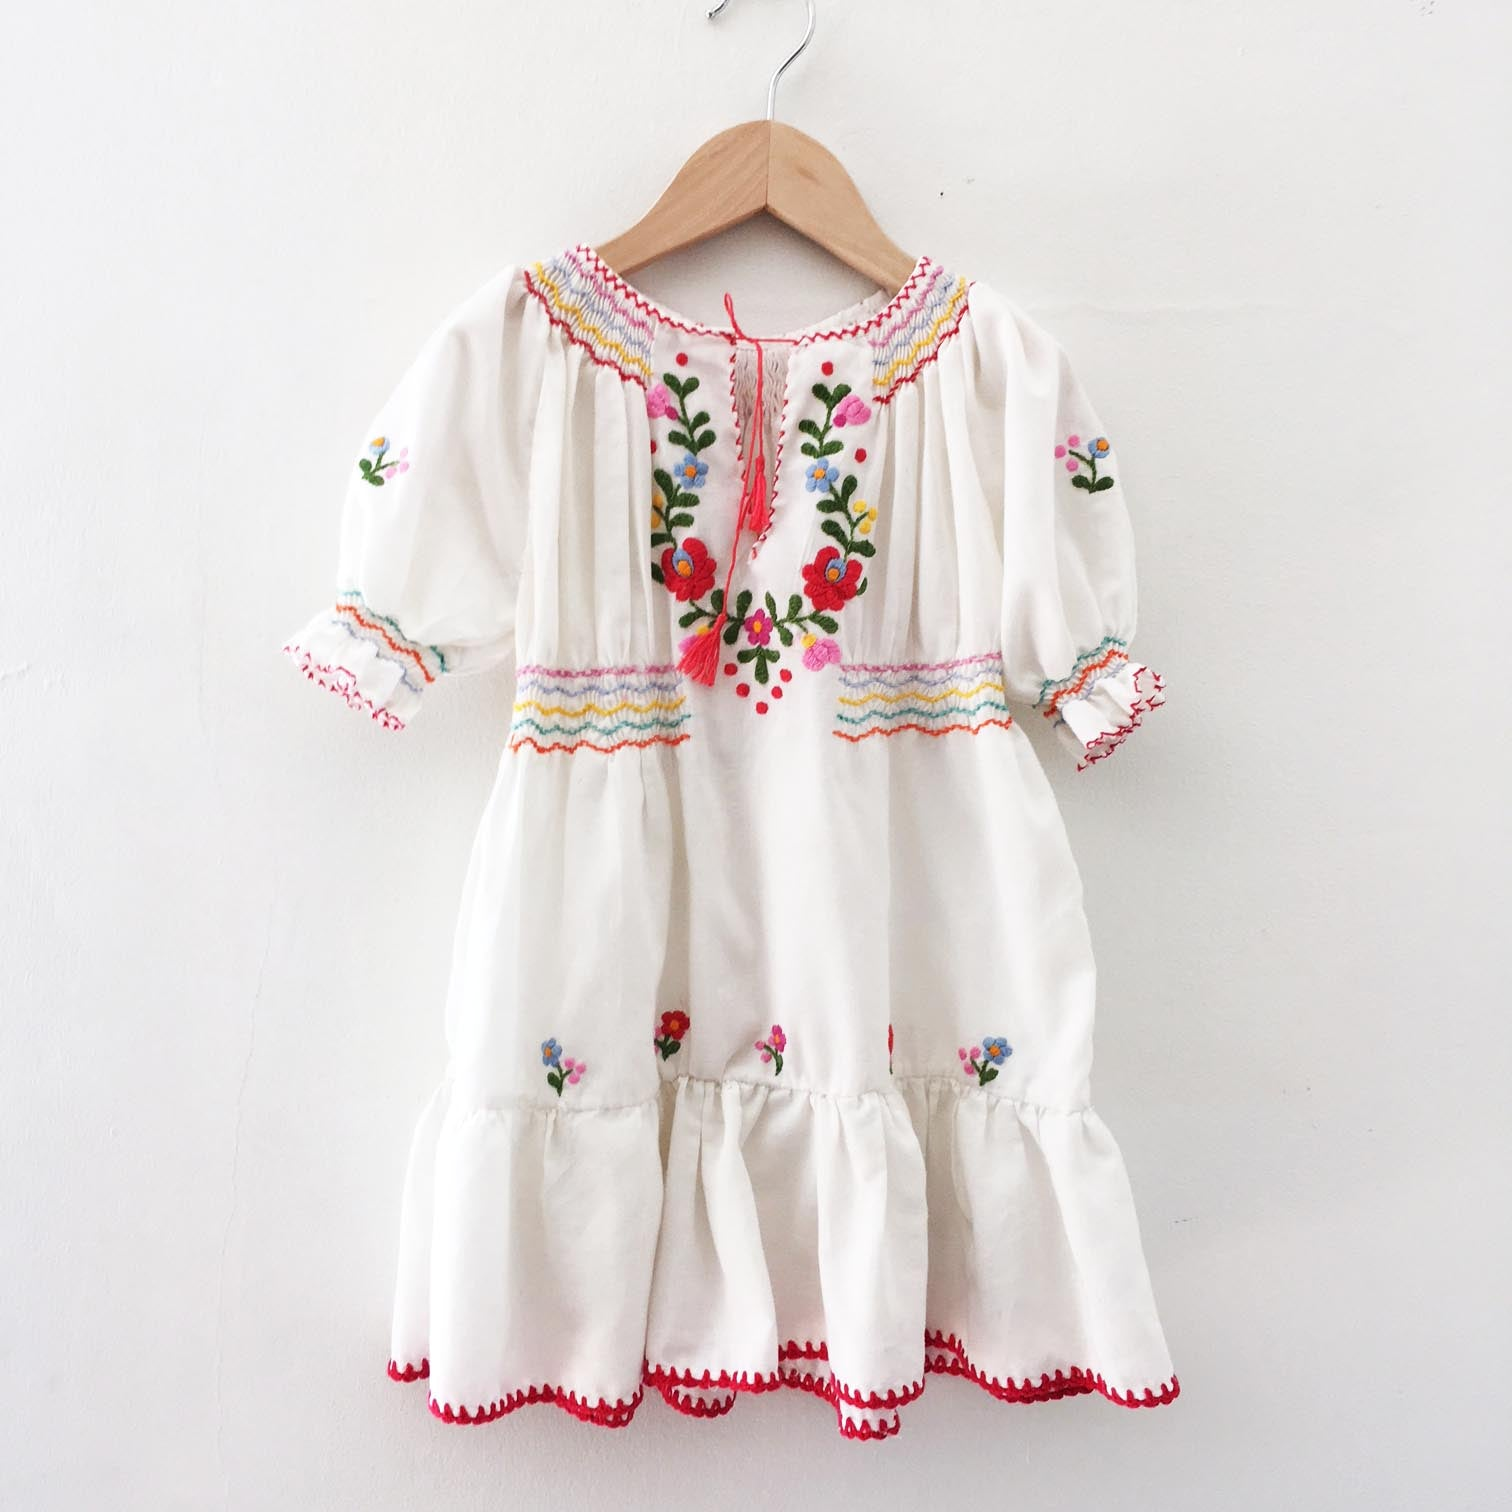 Vintage embroidered peasant dress size 3-4